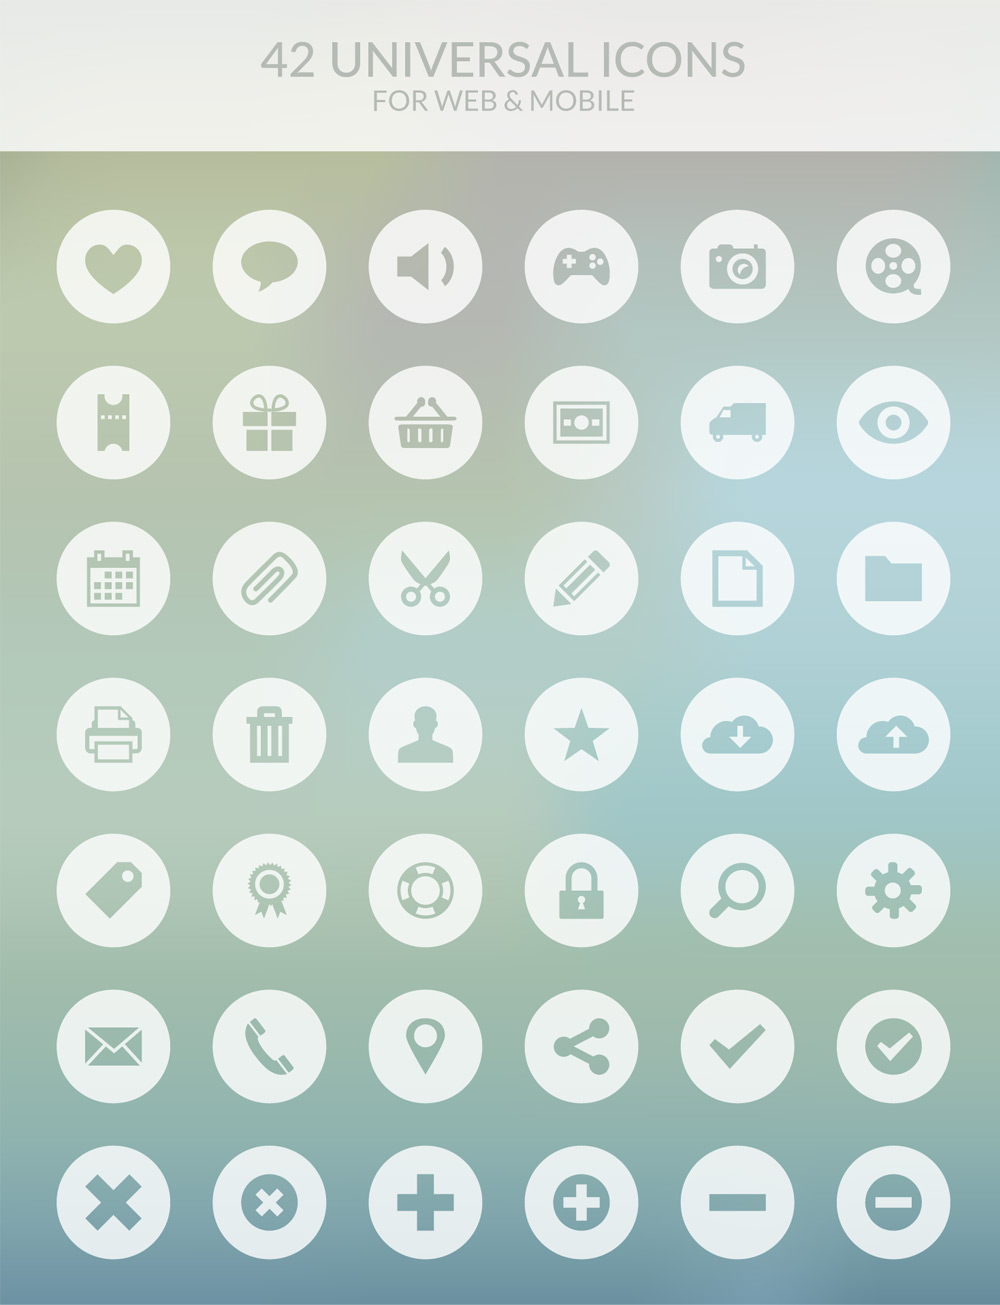 Free-universal-icons-for-web-and-mobile